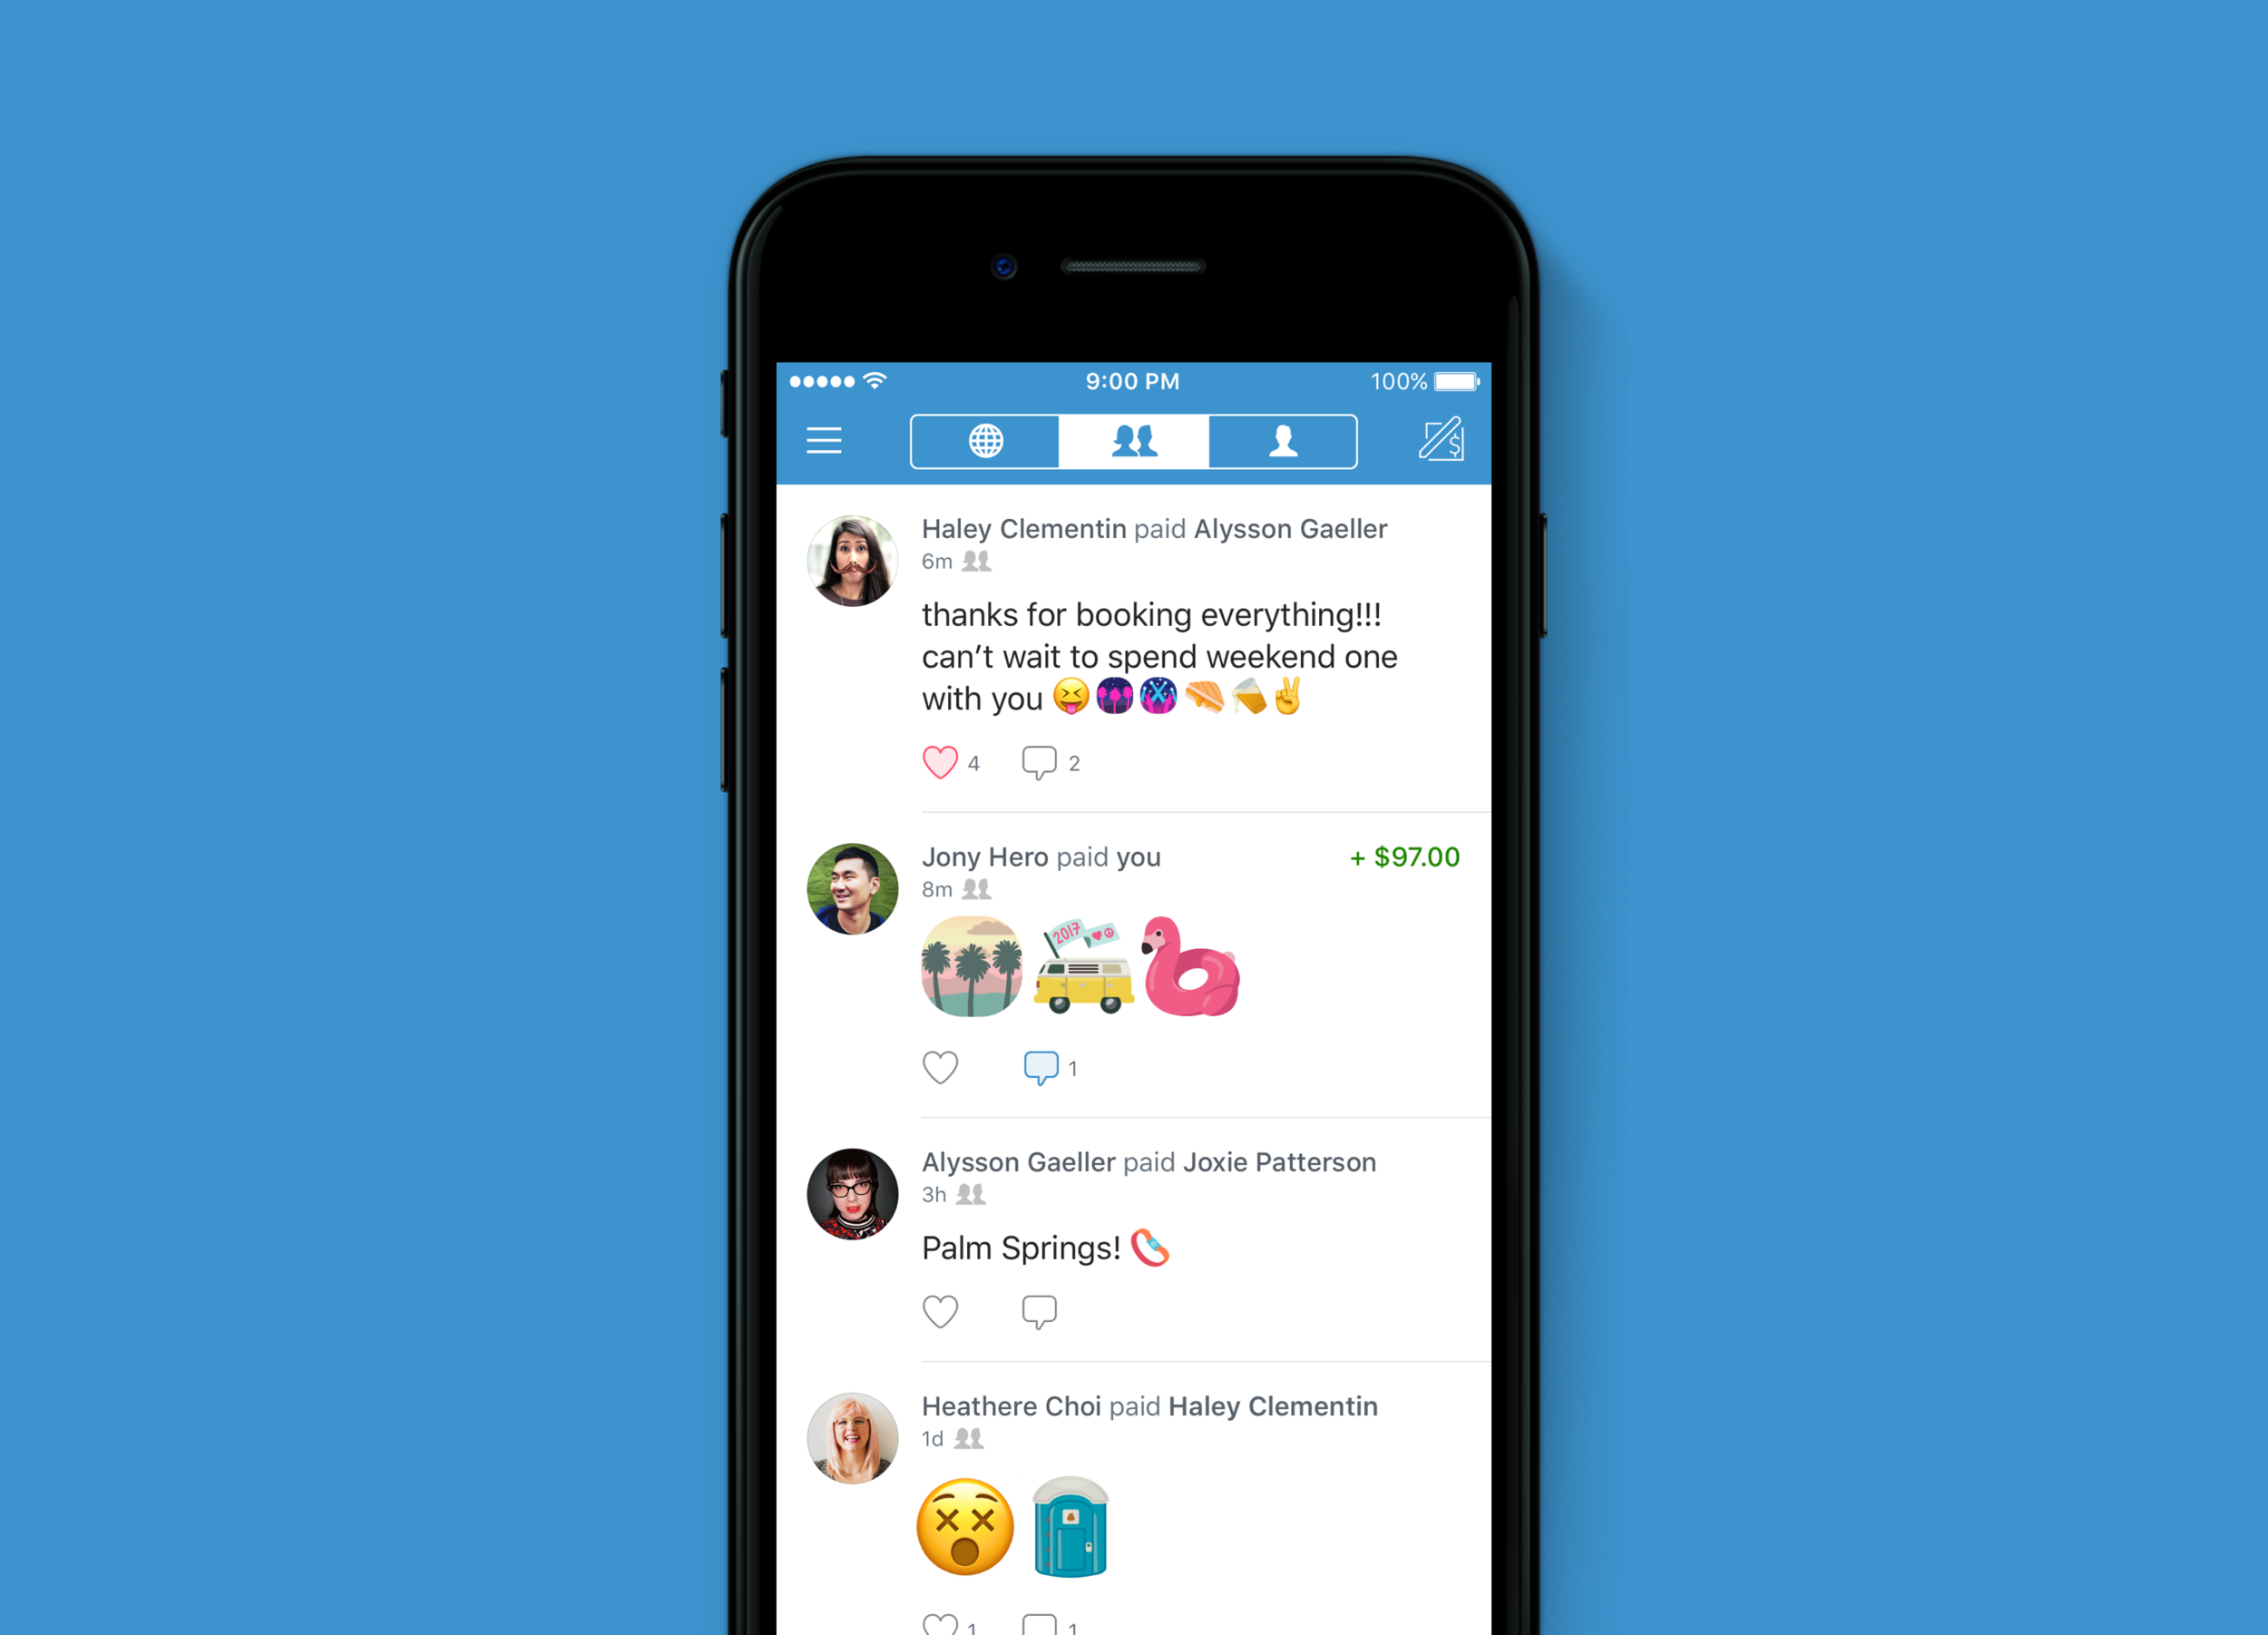 Custom festival emojis in the Venmo Feed